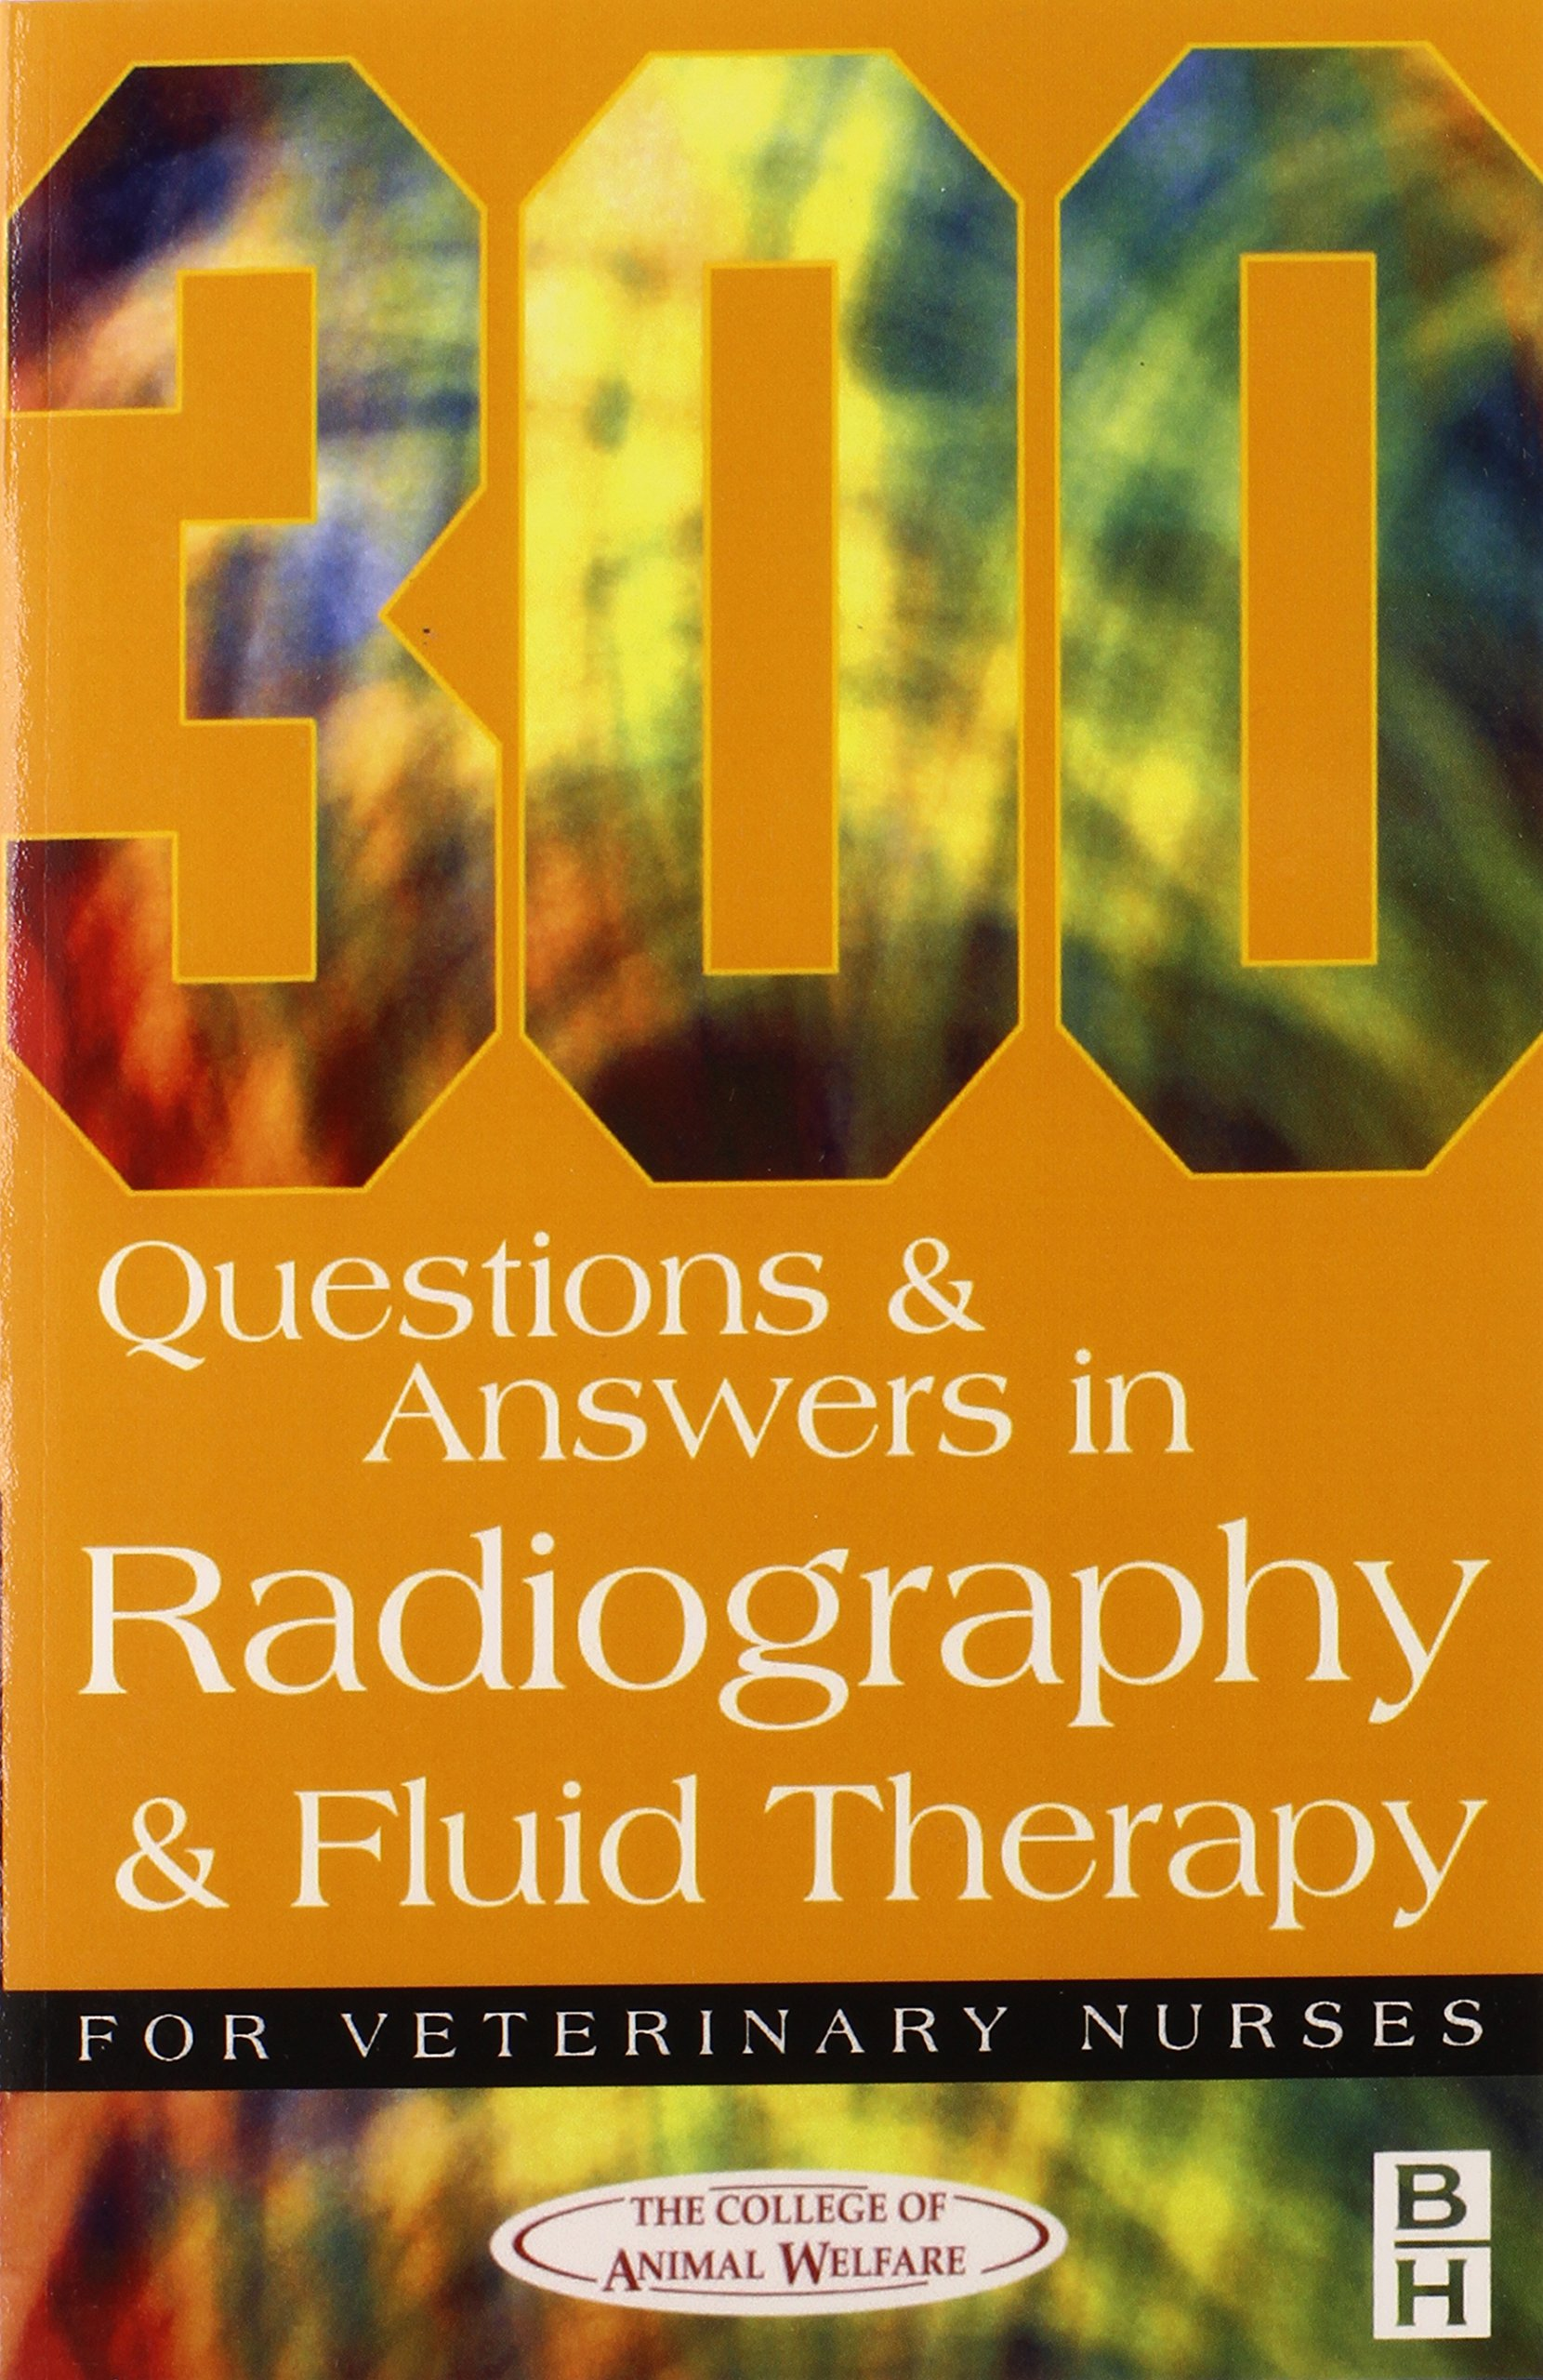 300 Questions and Answers In Radiography and Fluid Therapy